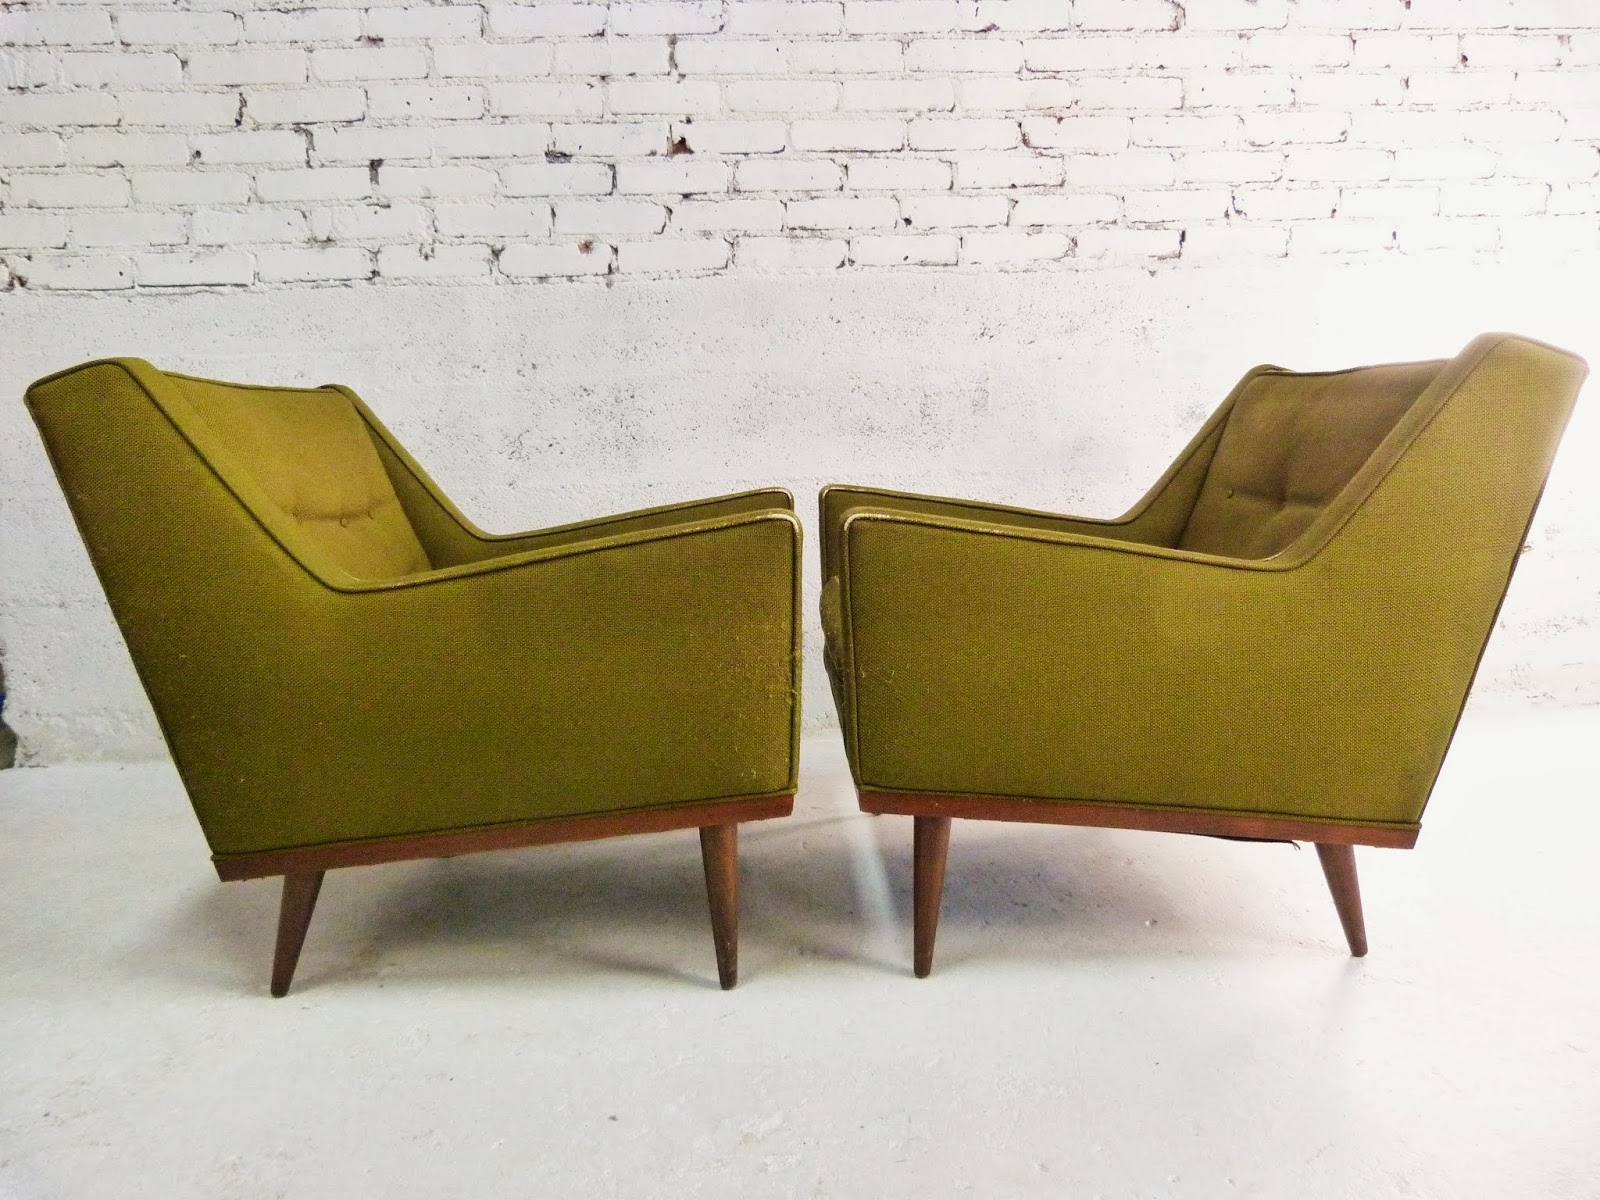 Modern mid century danish vintage furniture shop used Mid century chairs